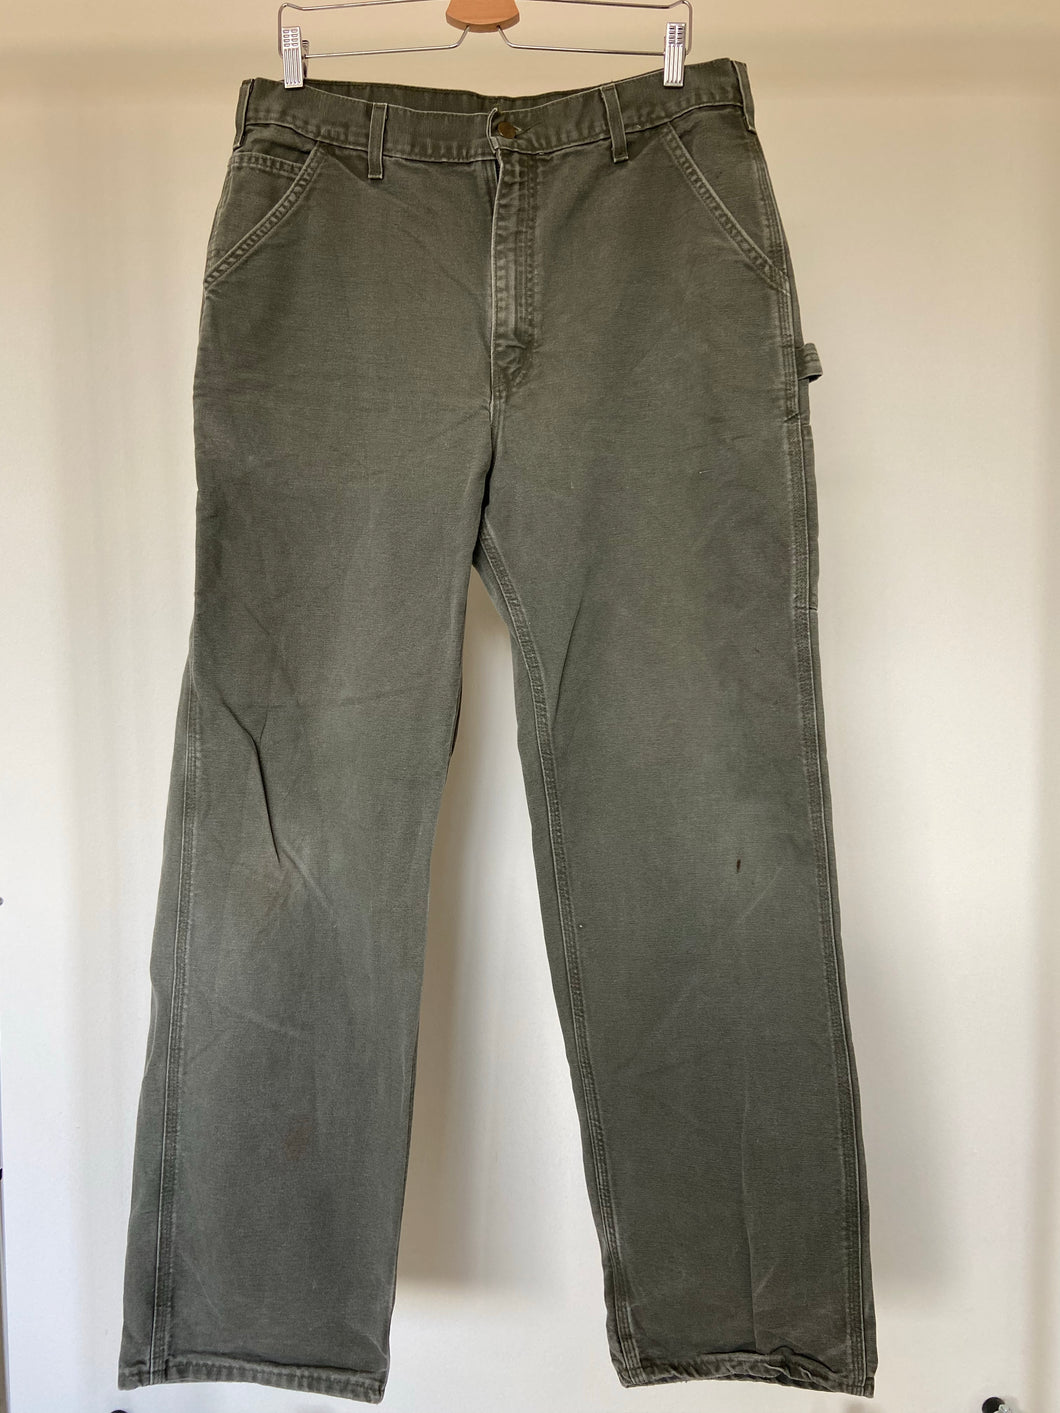 Vintage Green Carhartt Carpenter Pants (34X33.5)